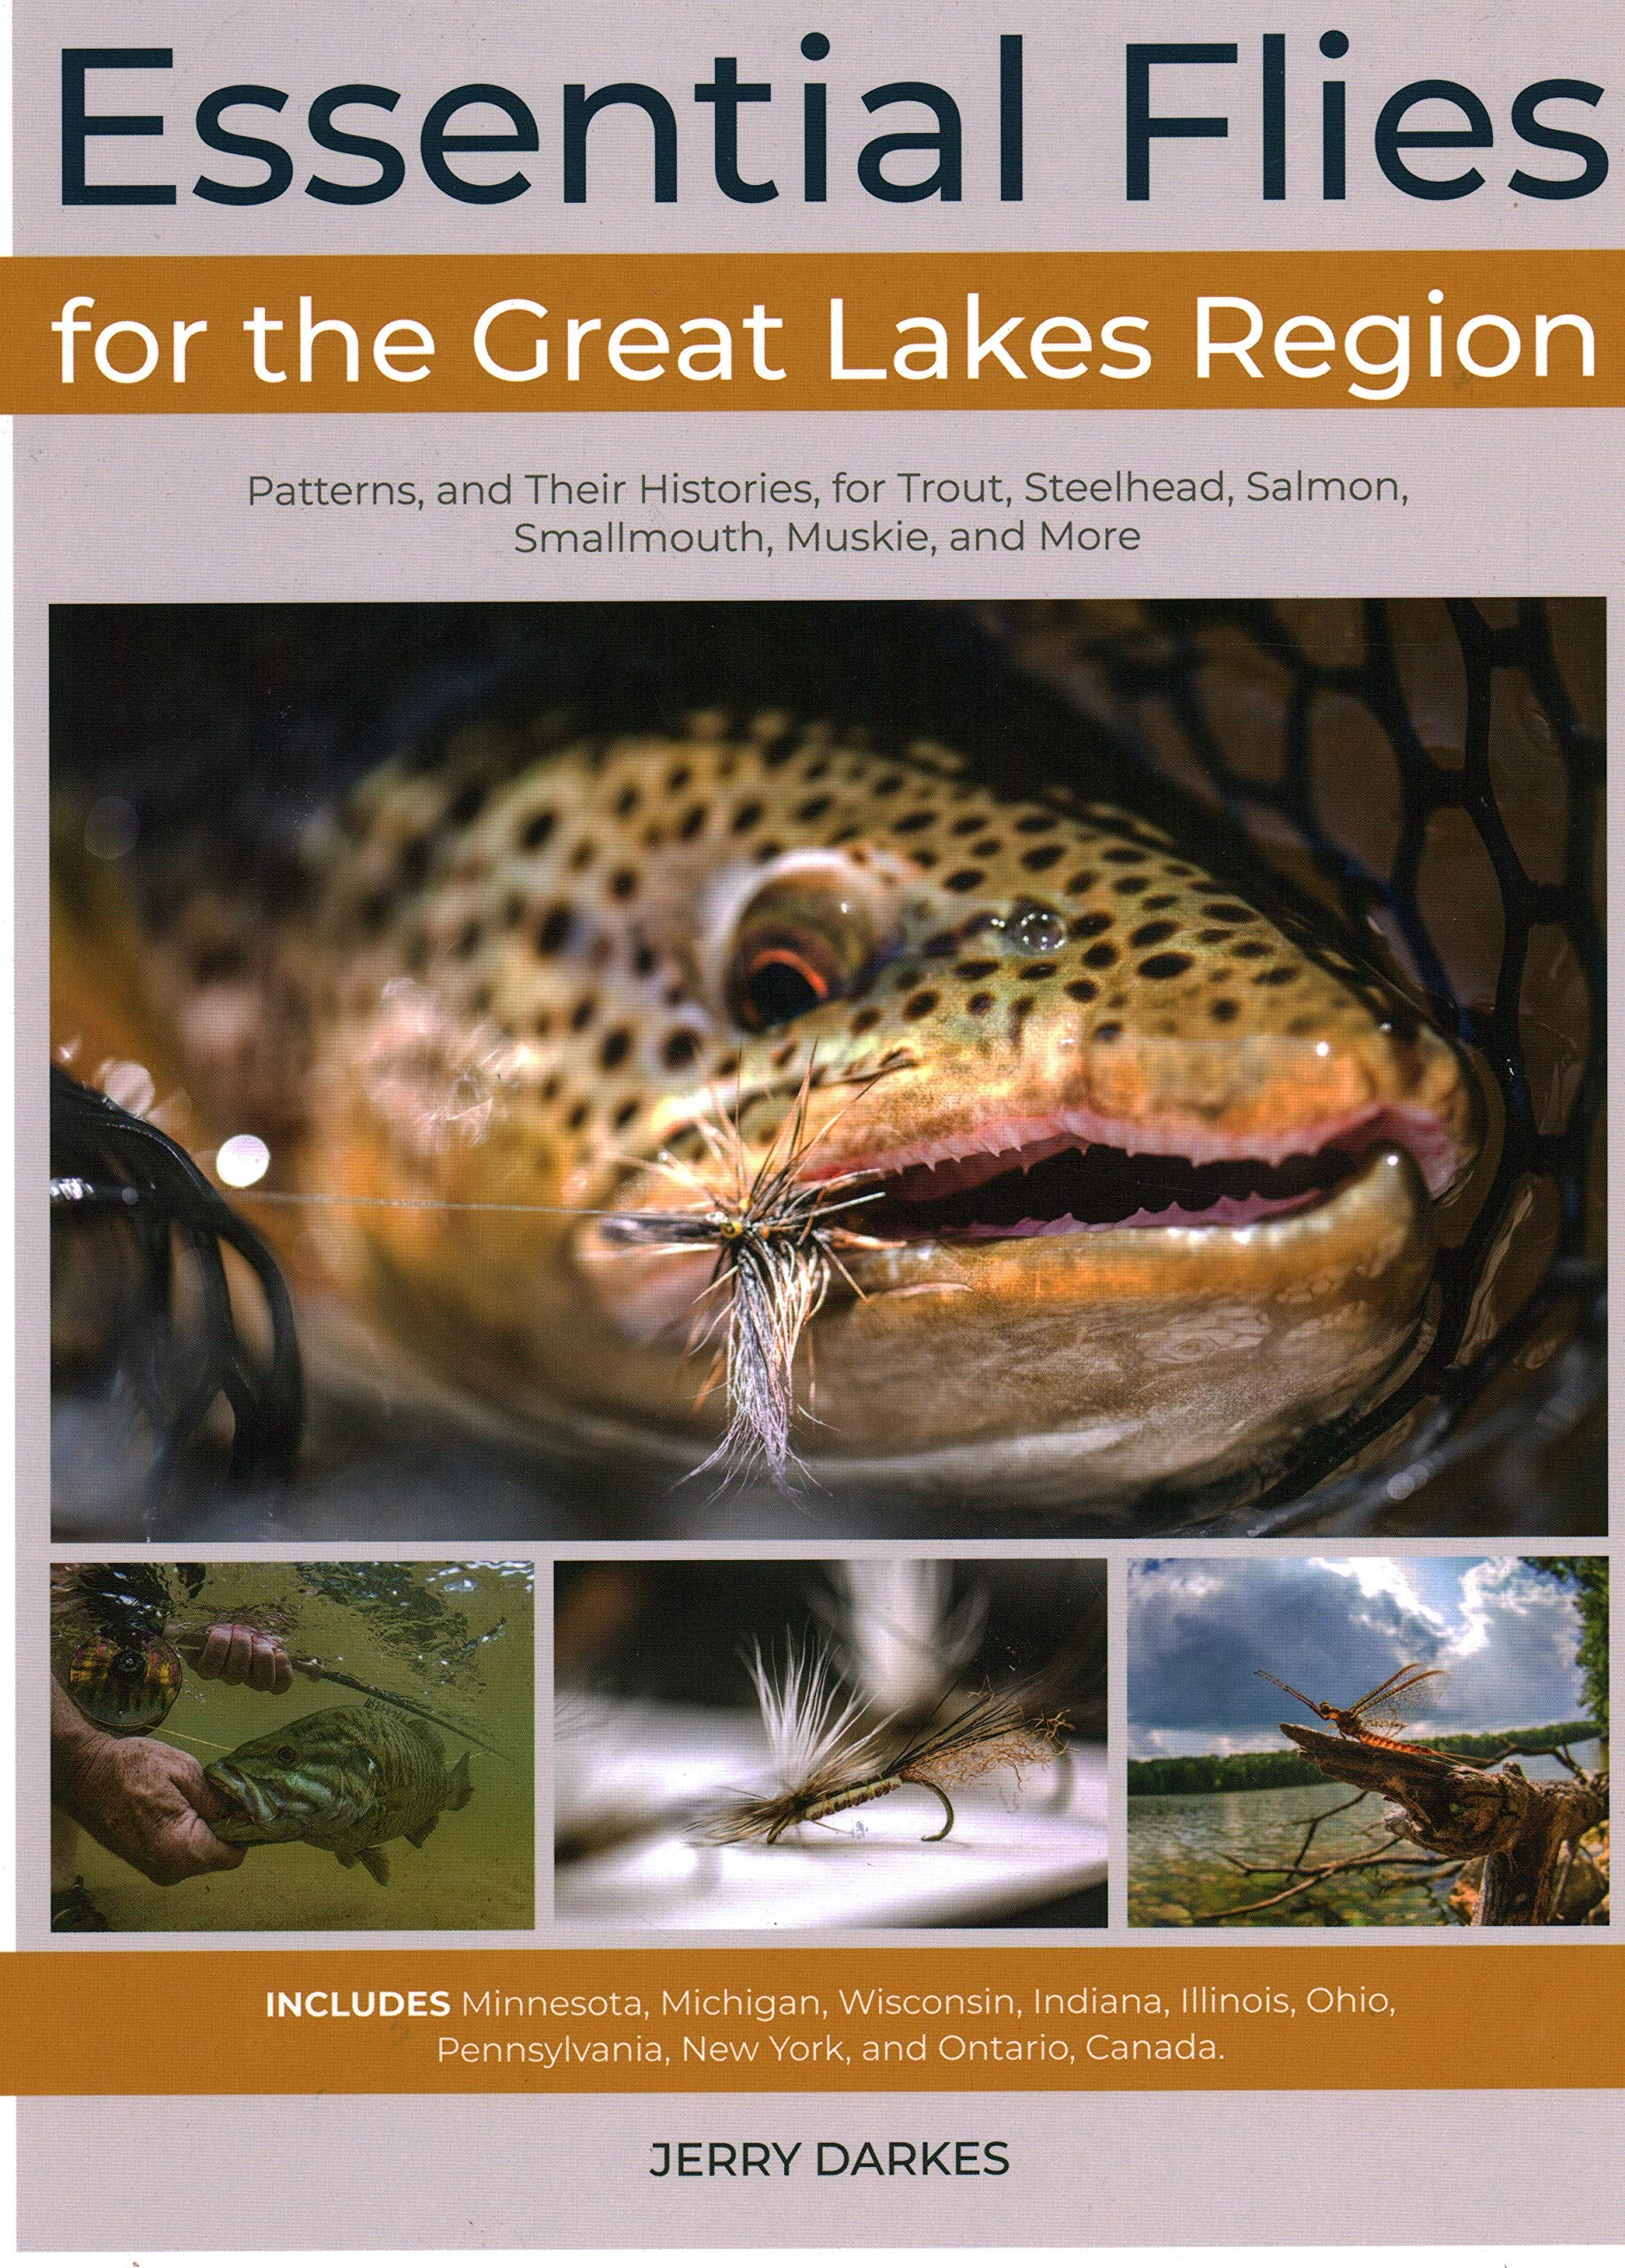 Essential Flies for the Great Lakes Region: Patterns, and Their Histories, for Trout, Steelhead, Salmon, Smallmouth, Muskie, and More By Jerry Darkes